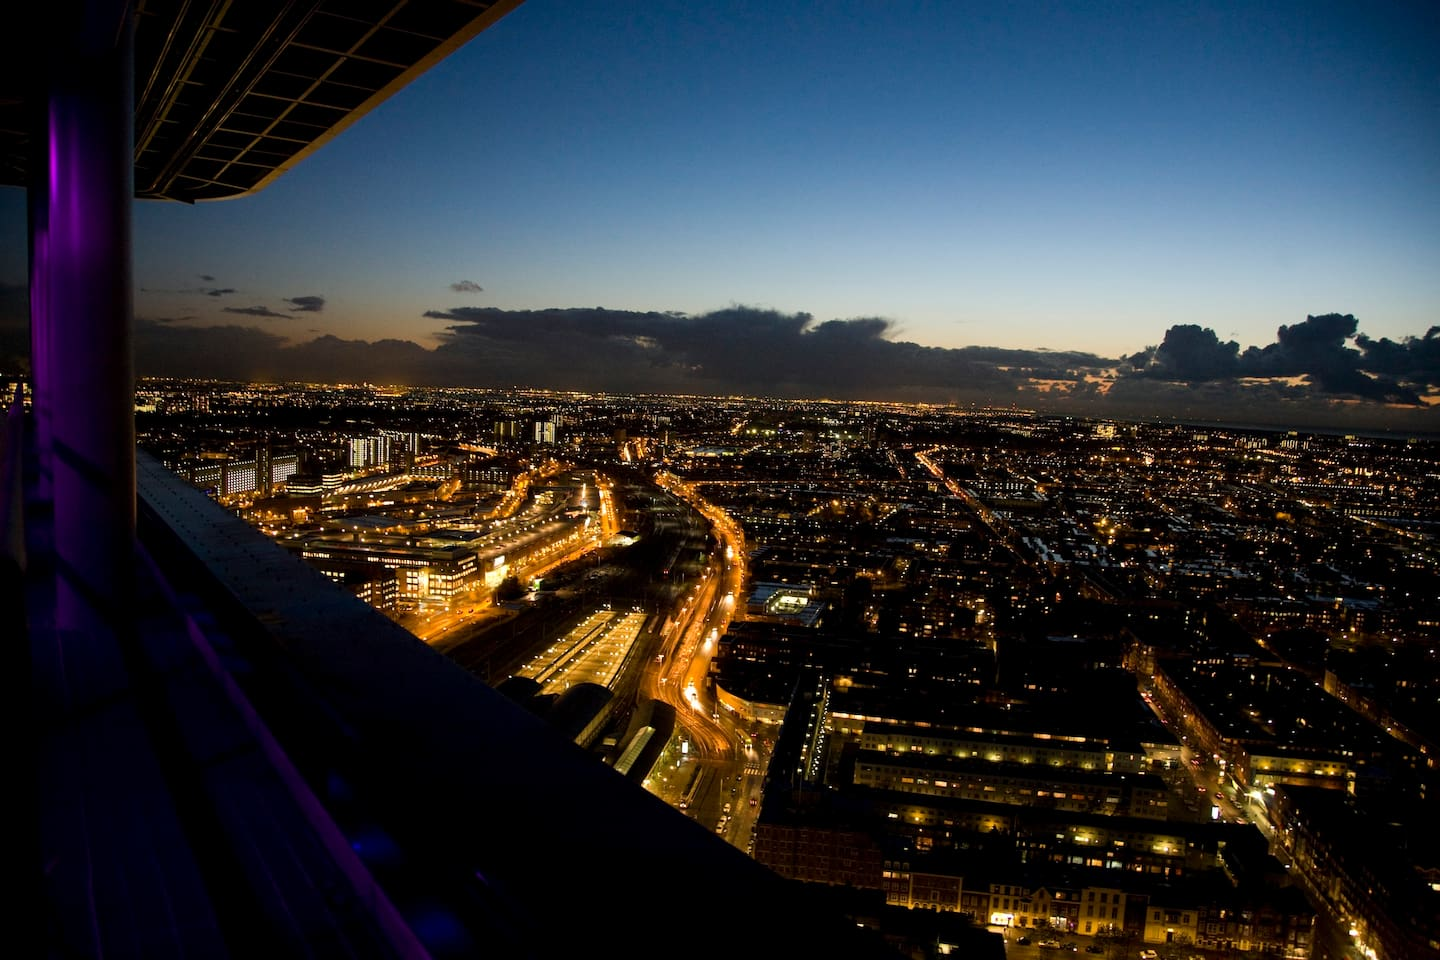 Great views from The Hague Tower!